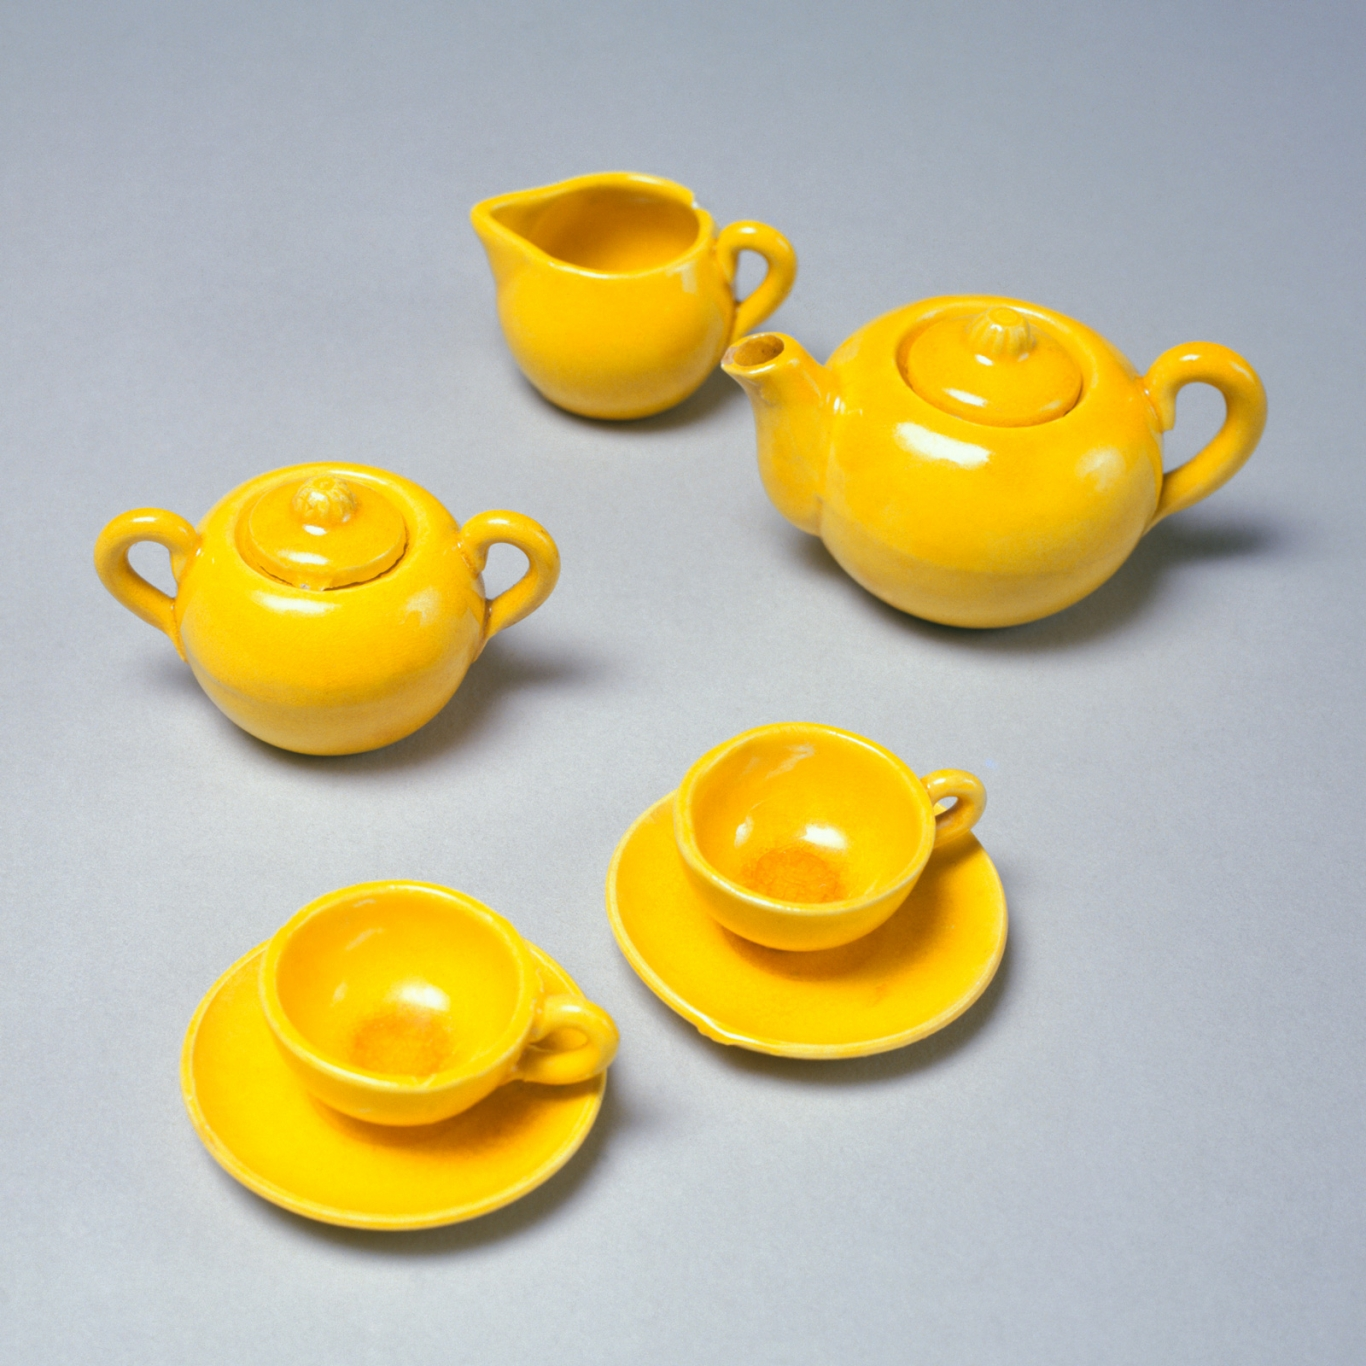 A stoneware teaset with a yellow glaze. The set has two teacups, two saucers, a lidded teapot, sugar bowl with lid, and a milk jug.